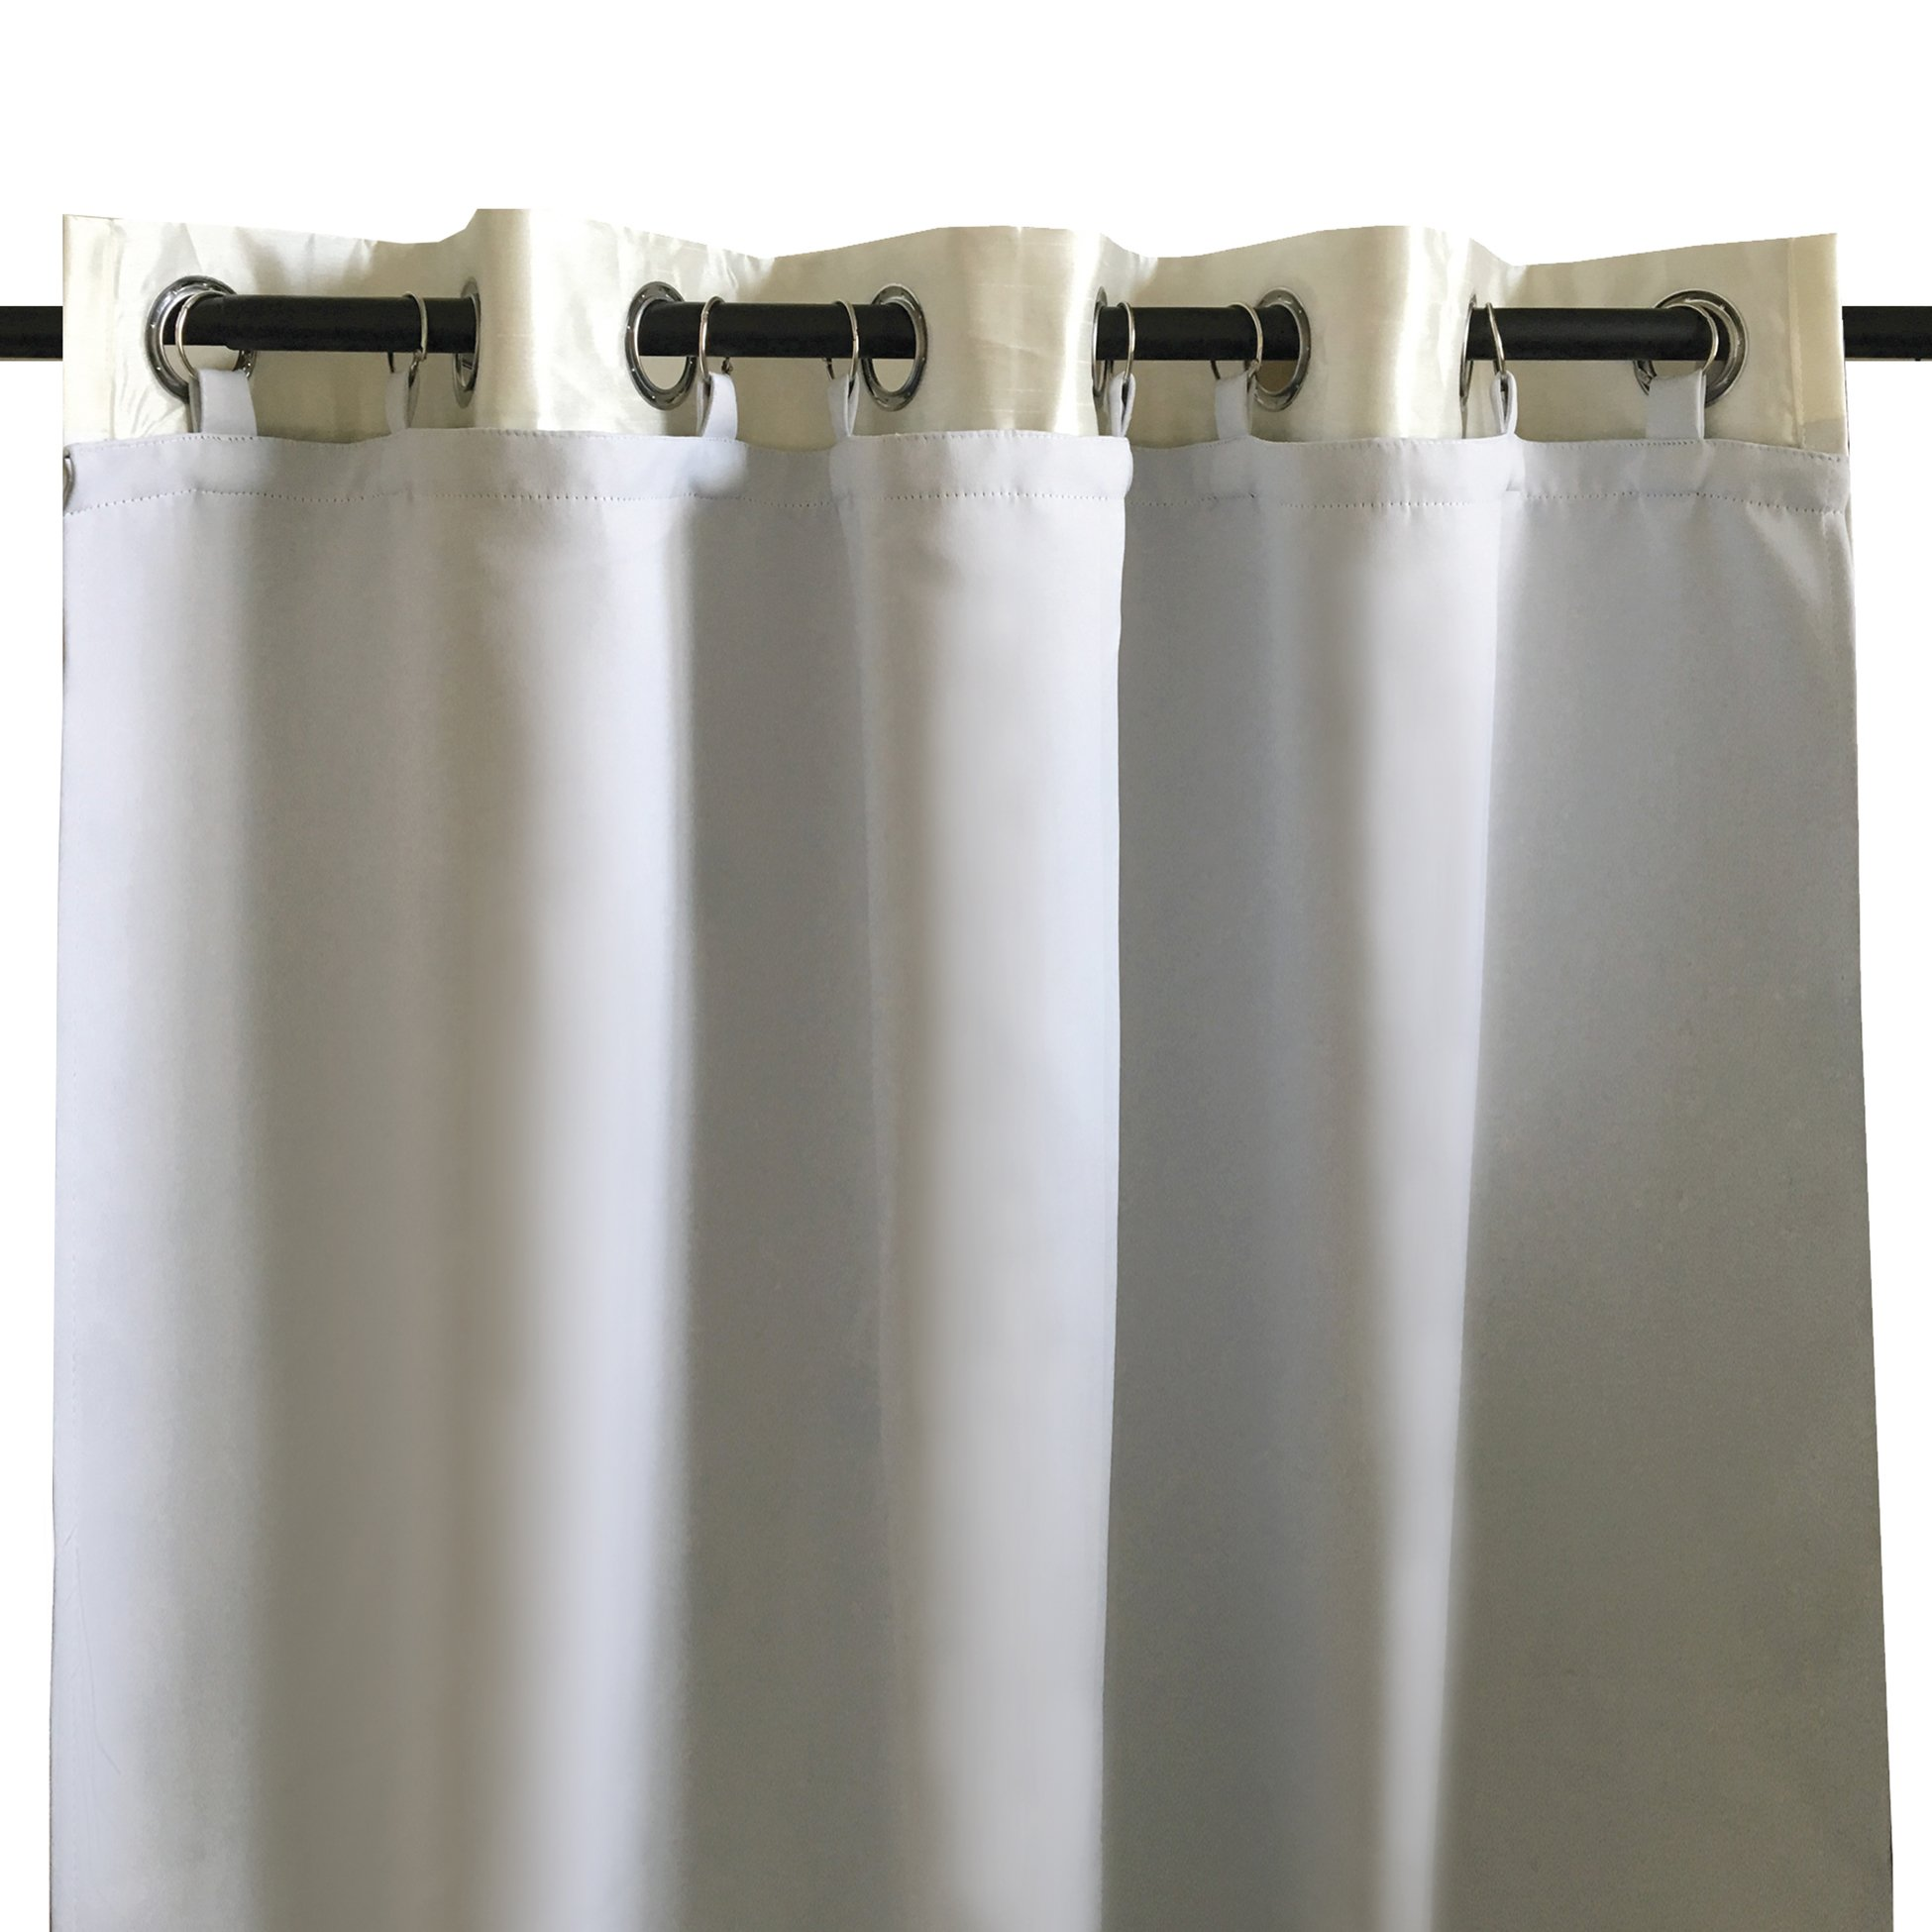 DriftAway Thermal Insulated Blackout Curtain Liner for grommet 84 inch curtains. set of 2, each Liner size (50''x80''), Rings included